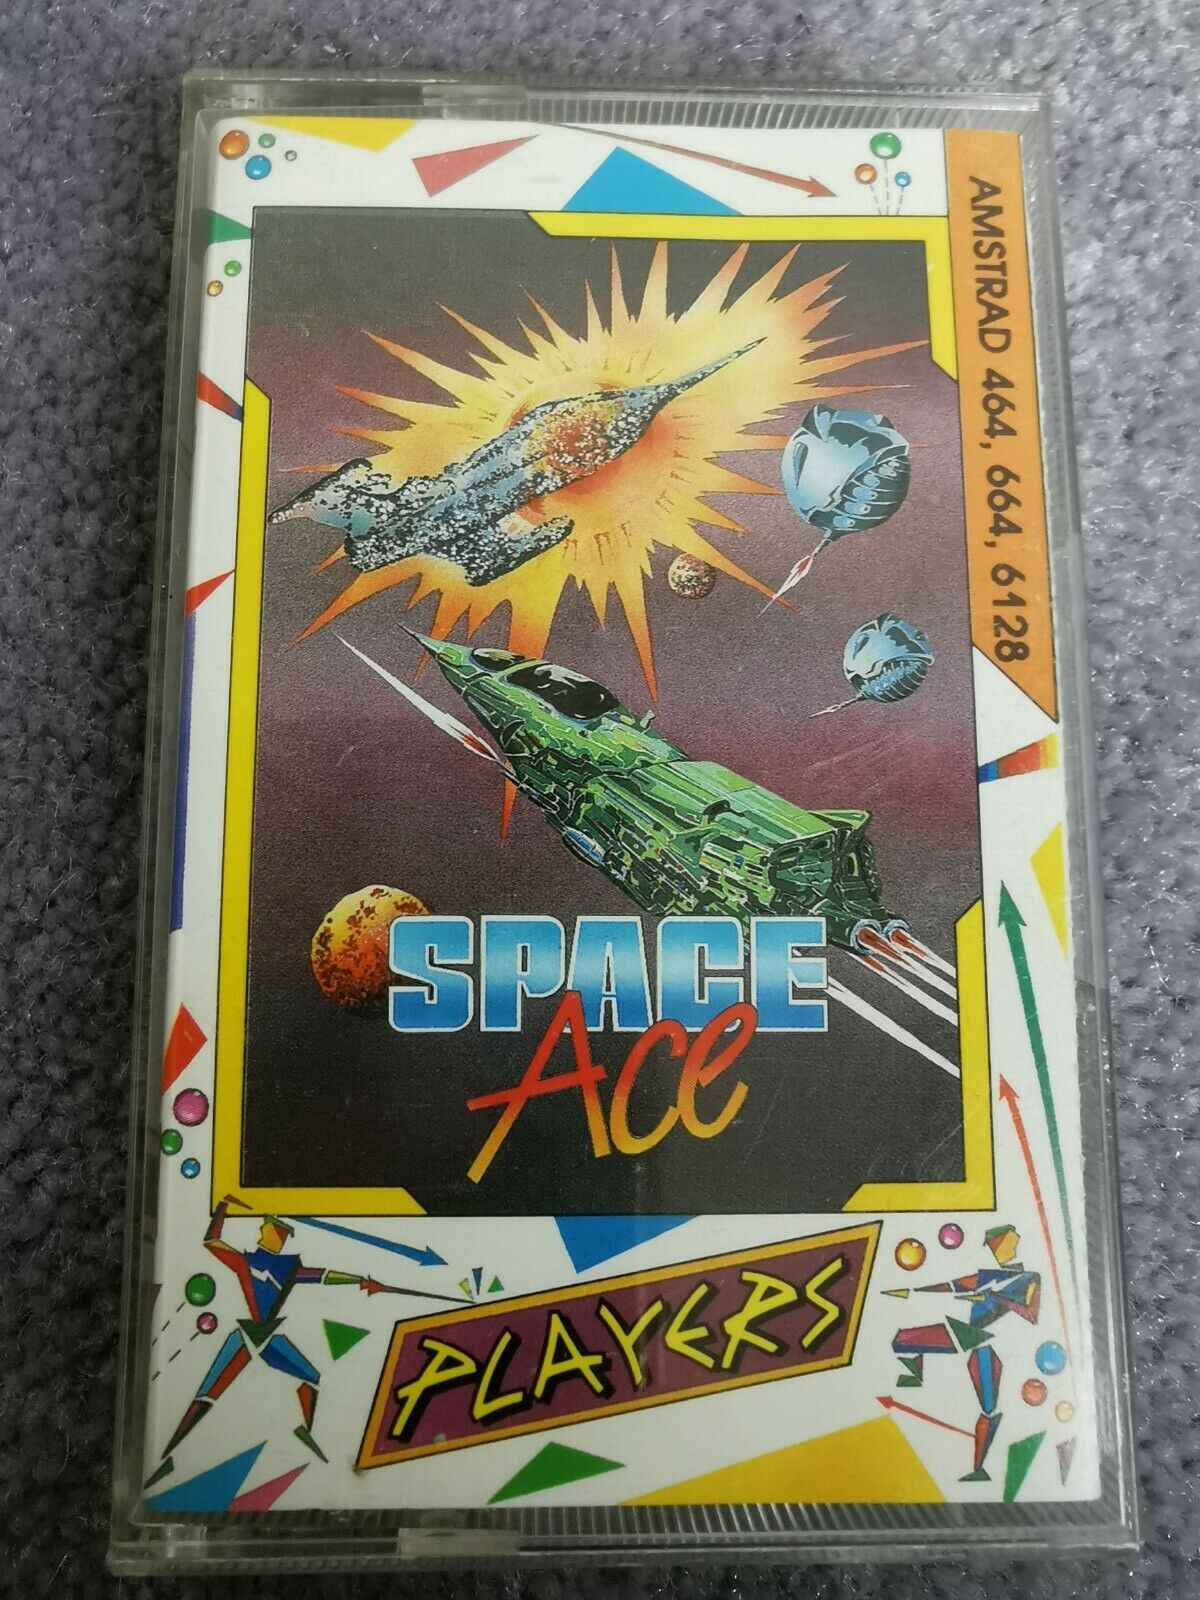 Amstrad cpc cassette k7 / SPACE ACE   / PLAYERS